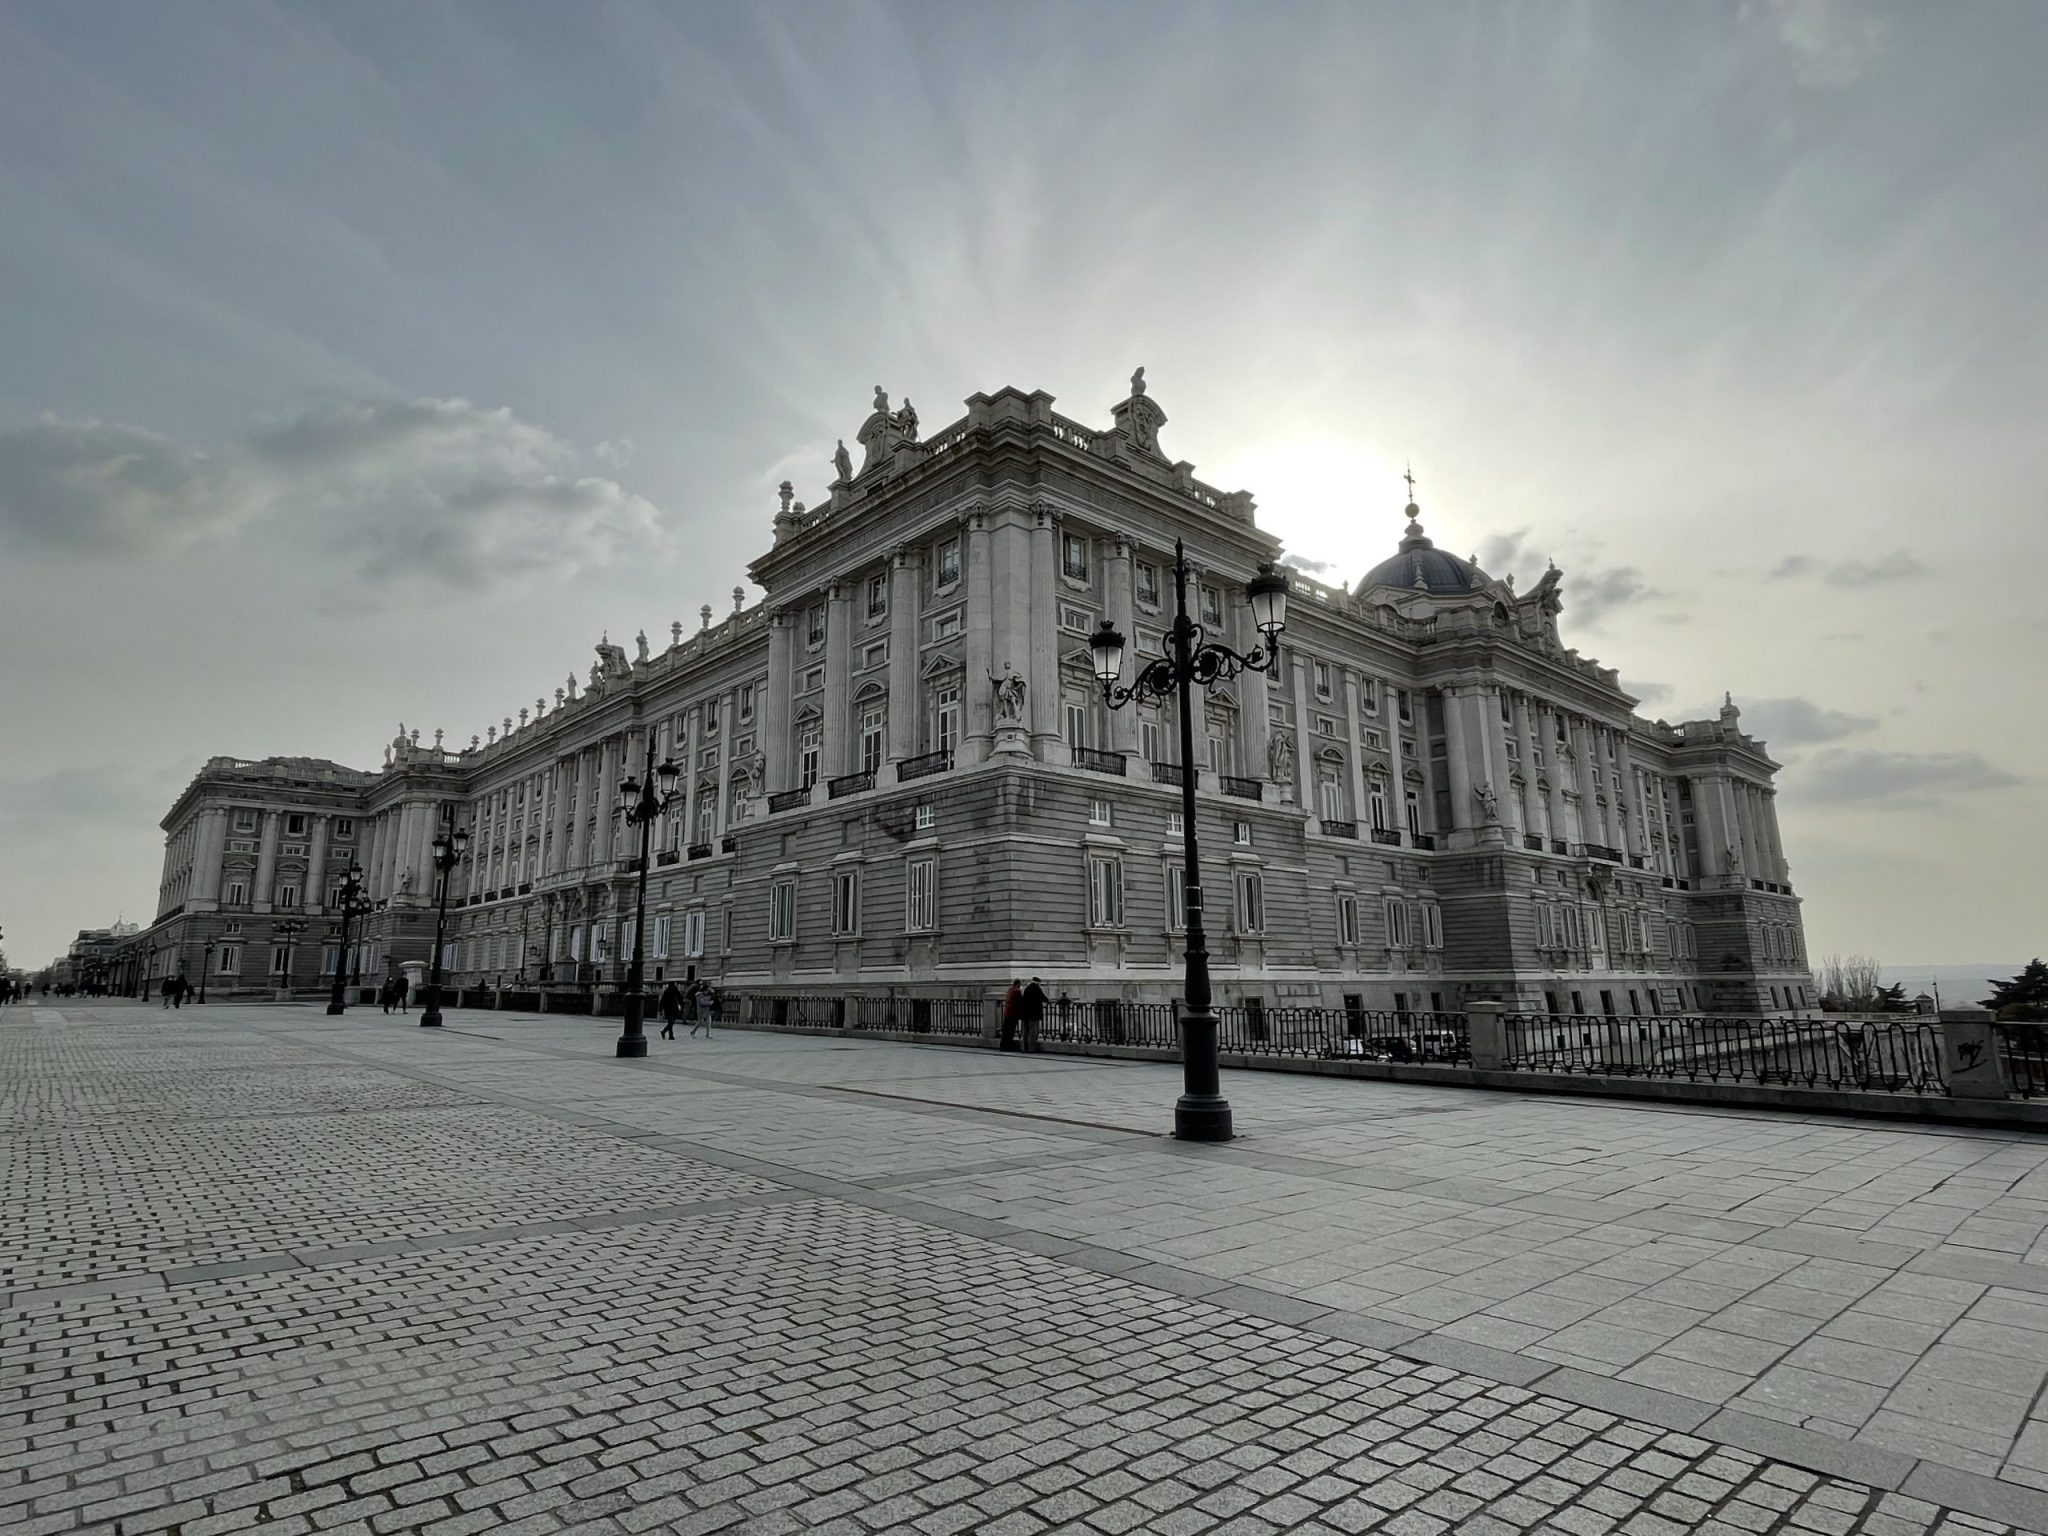 Madrid Palacio Real in March 2021